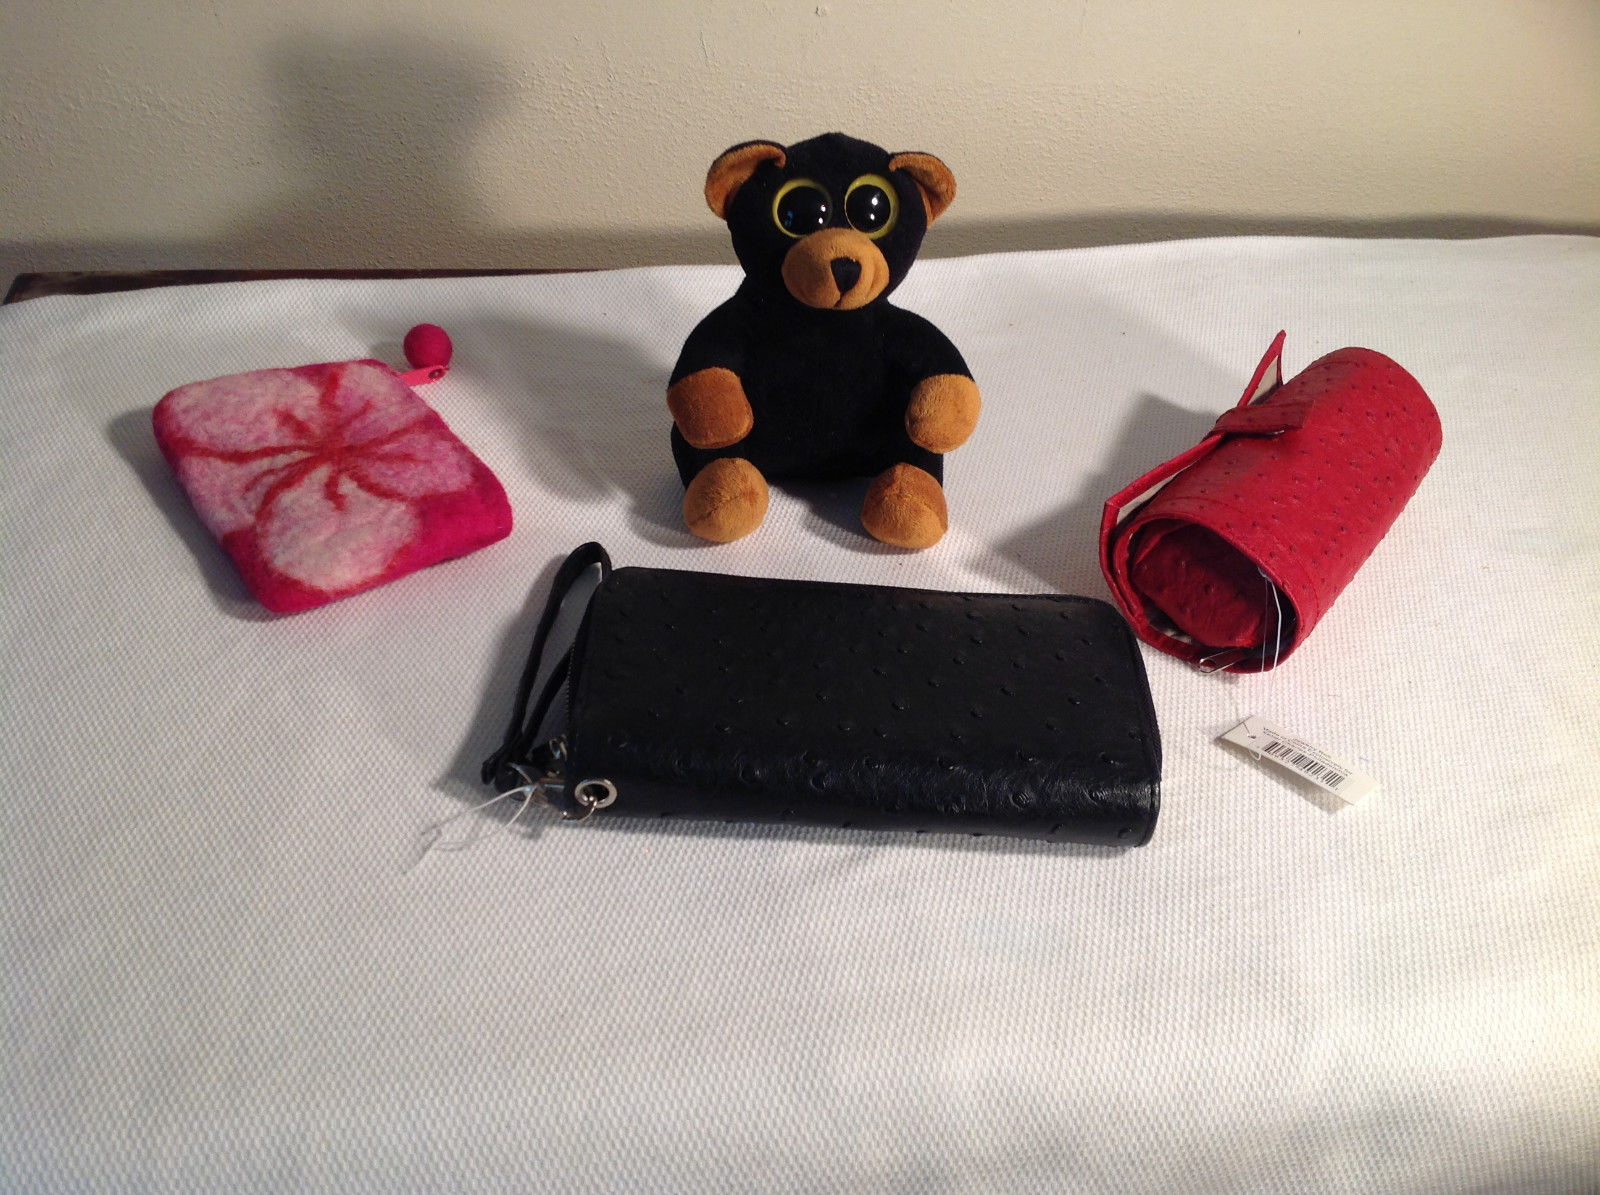 Womens accessories lot + teddy bear, 2 clutch purses, 1 jewel roll, black teddy